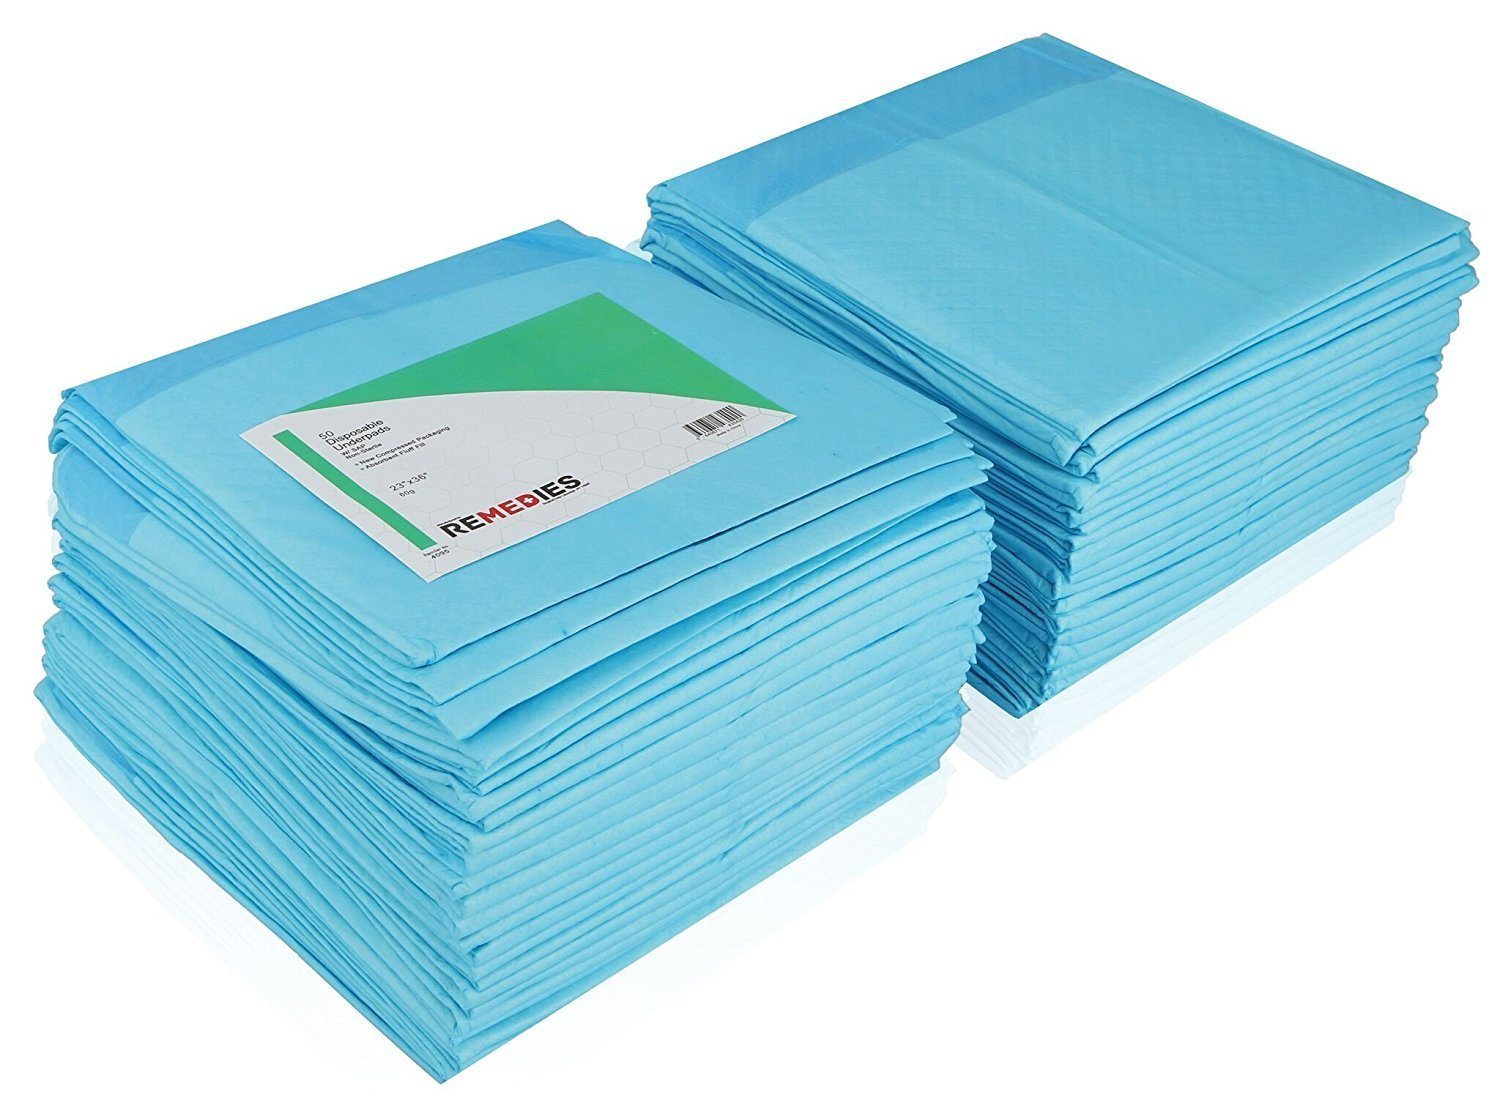 REMEDIES Underpads Disposable Super Absorbent Bed Protection, Large 30